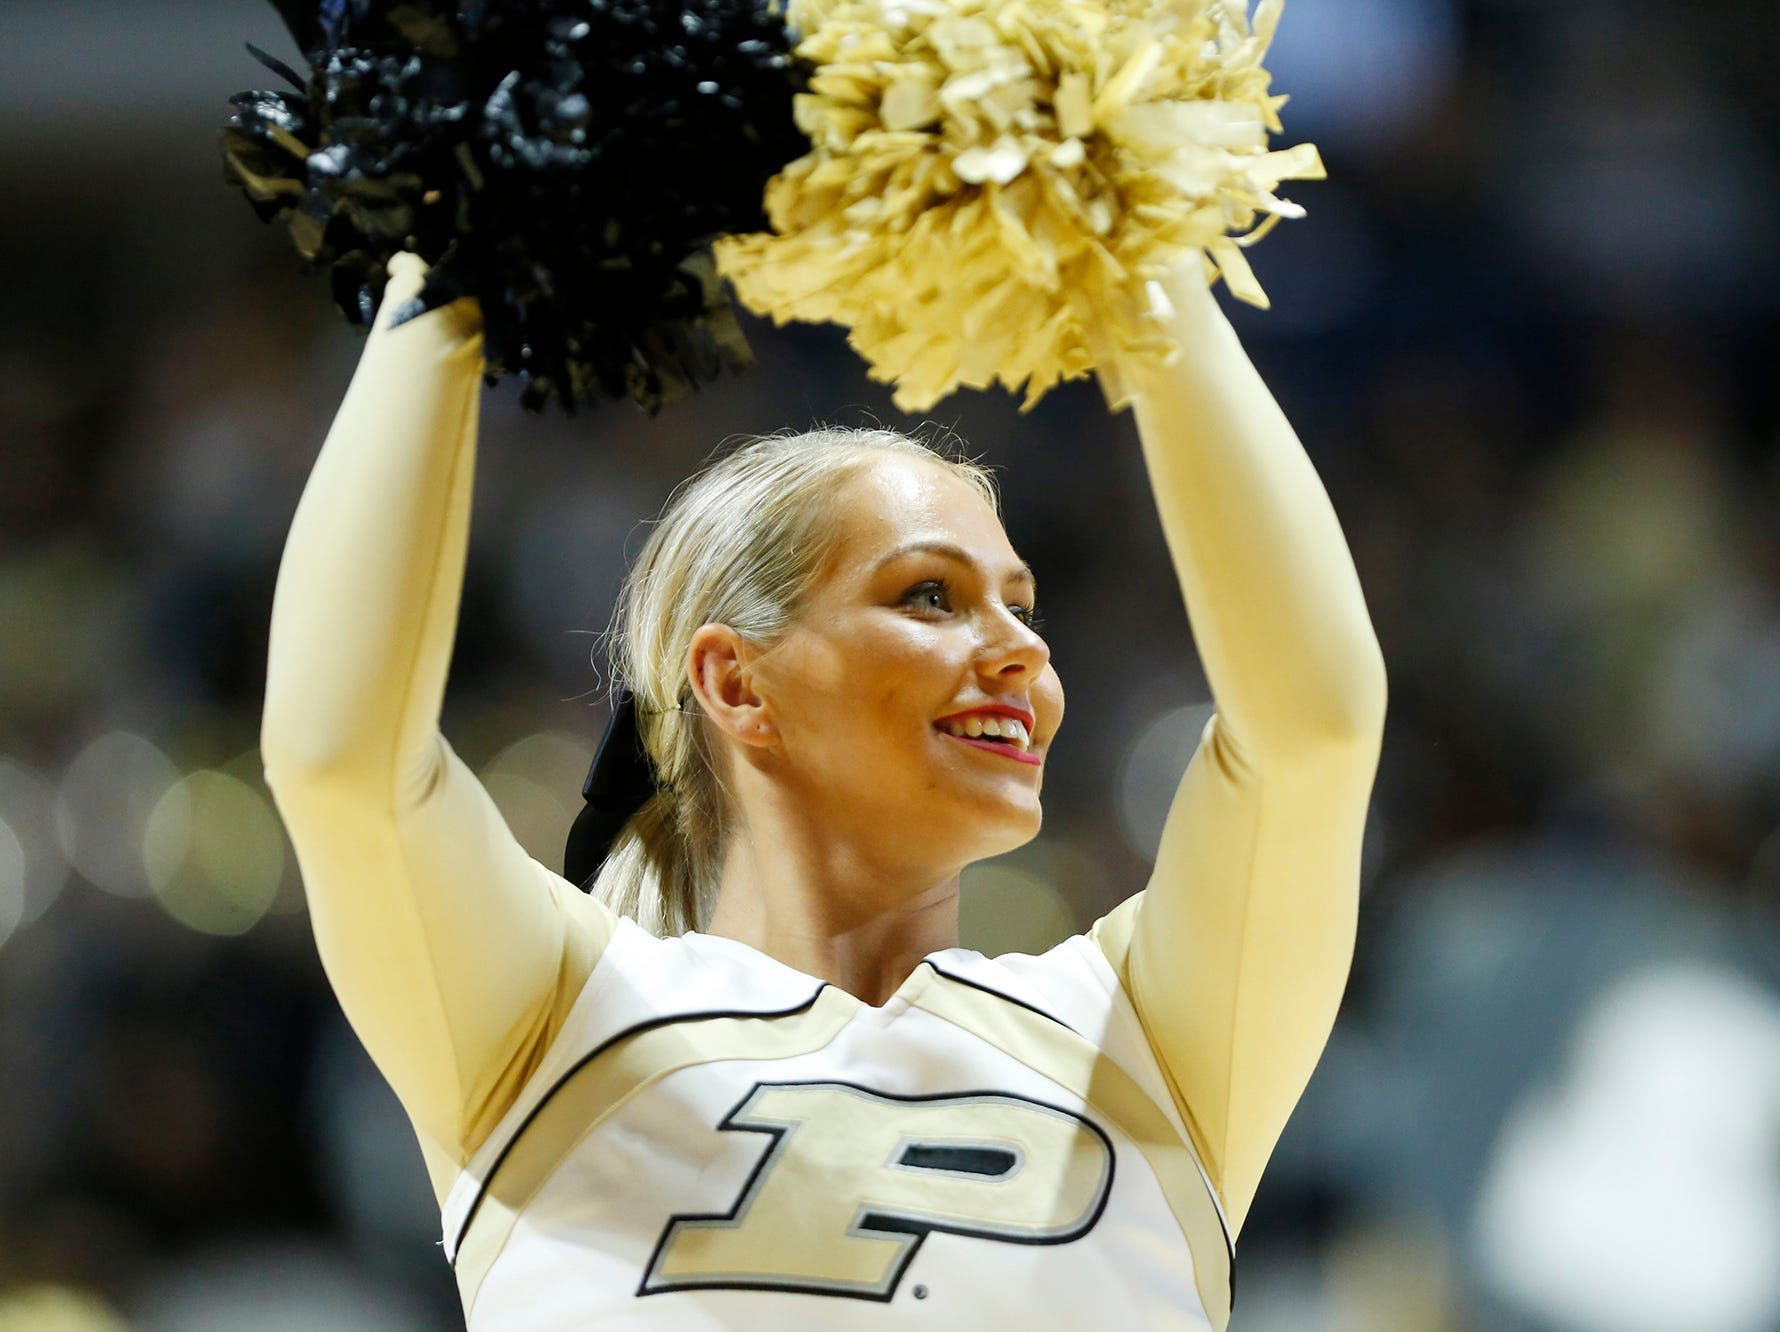 Purdue cheerleaders entertain during a timeout as the Boilermakers face Ashland Sunday, November 4, 2018, at Mackey Arena. Purdue defeated Ashland 85-69.